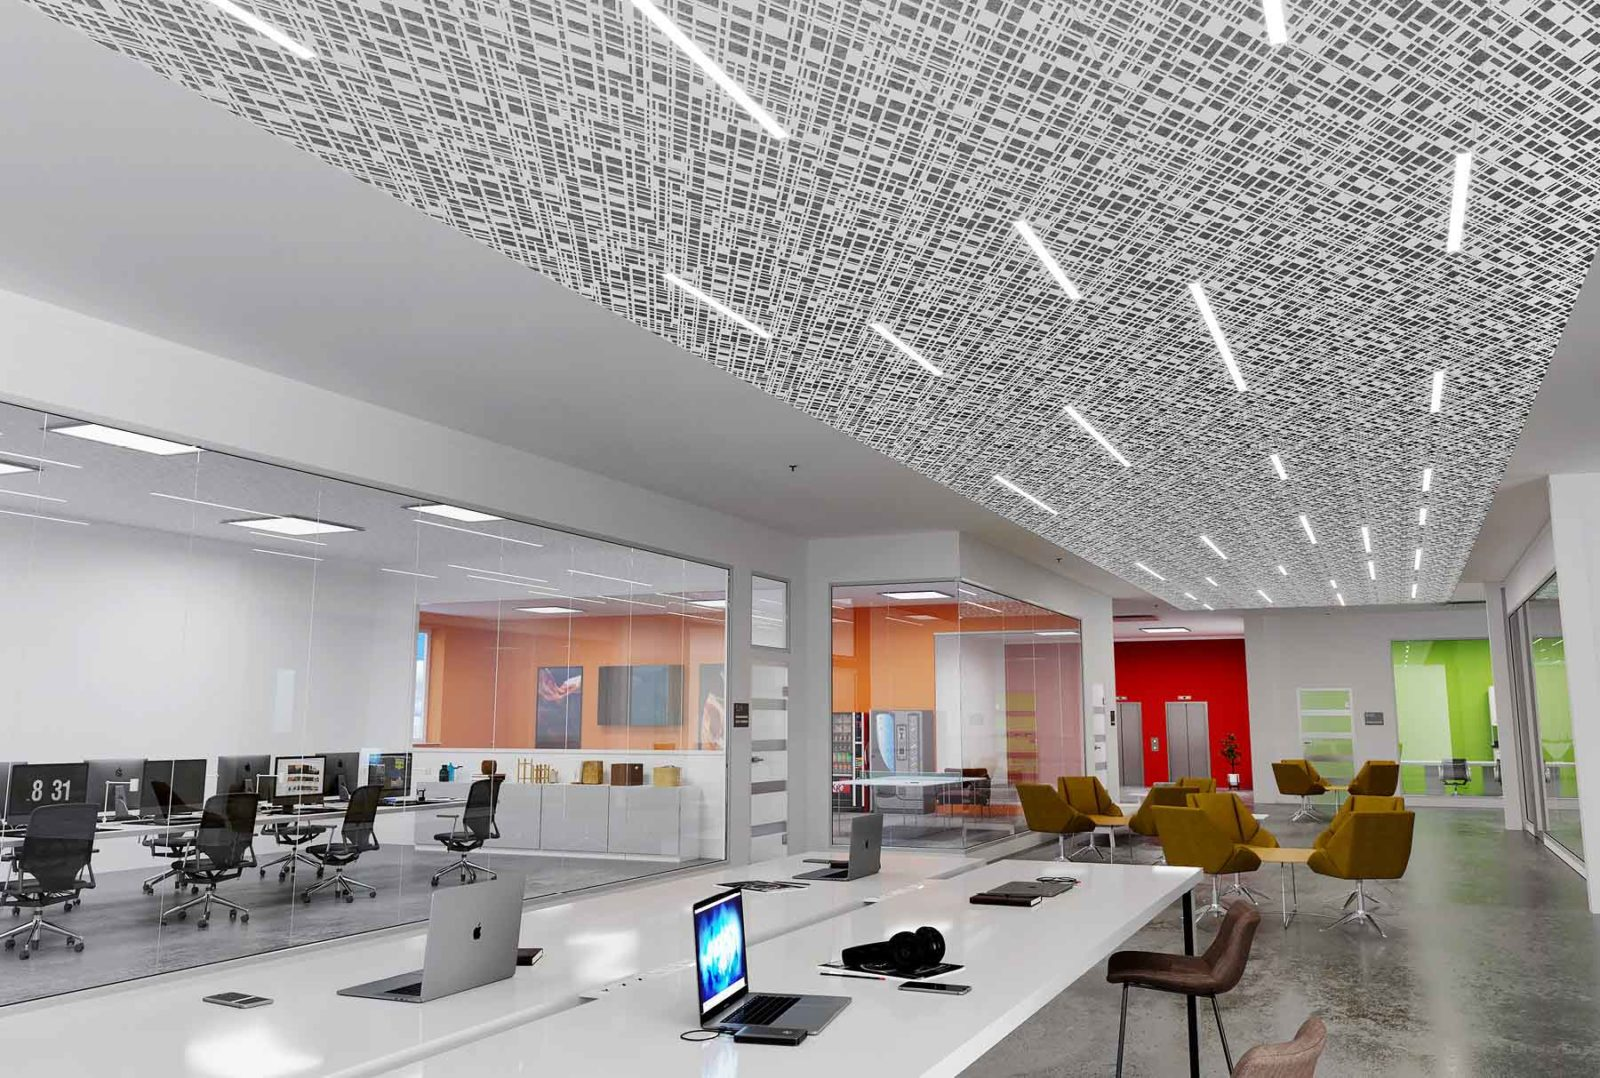 13 Office Ceiling Panel Design Ideas That Are Anything But Basic Arktura